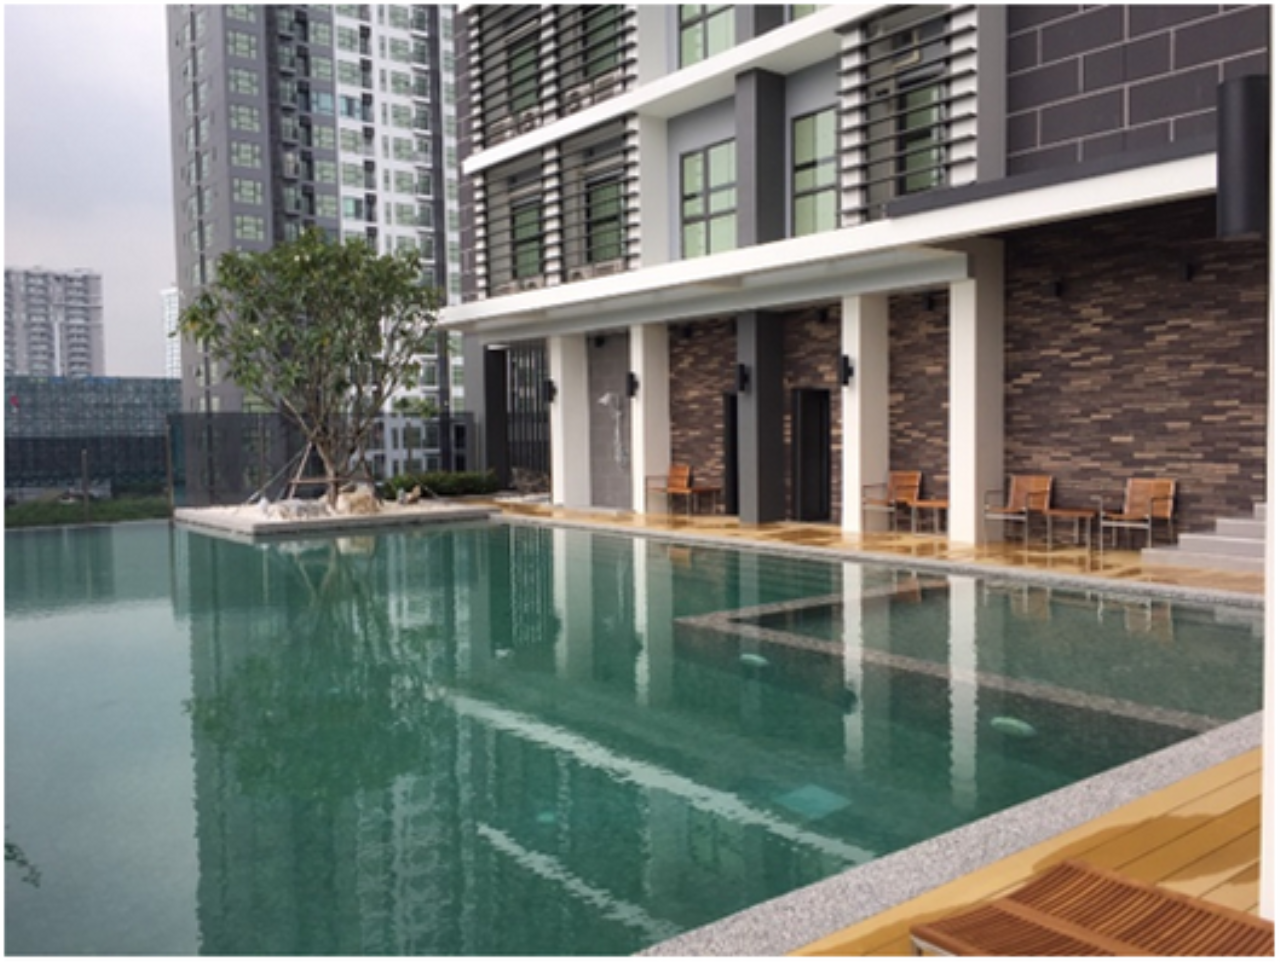 RE/MAX CondoDee Agency's Top Floor Condo @ Asoke - Rama 9 UNDER Market - HOT Deal! 8